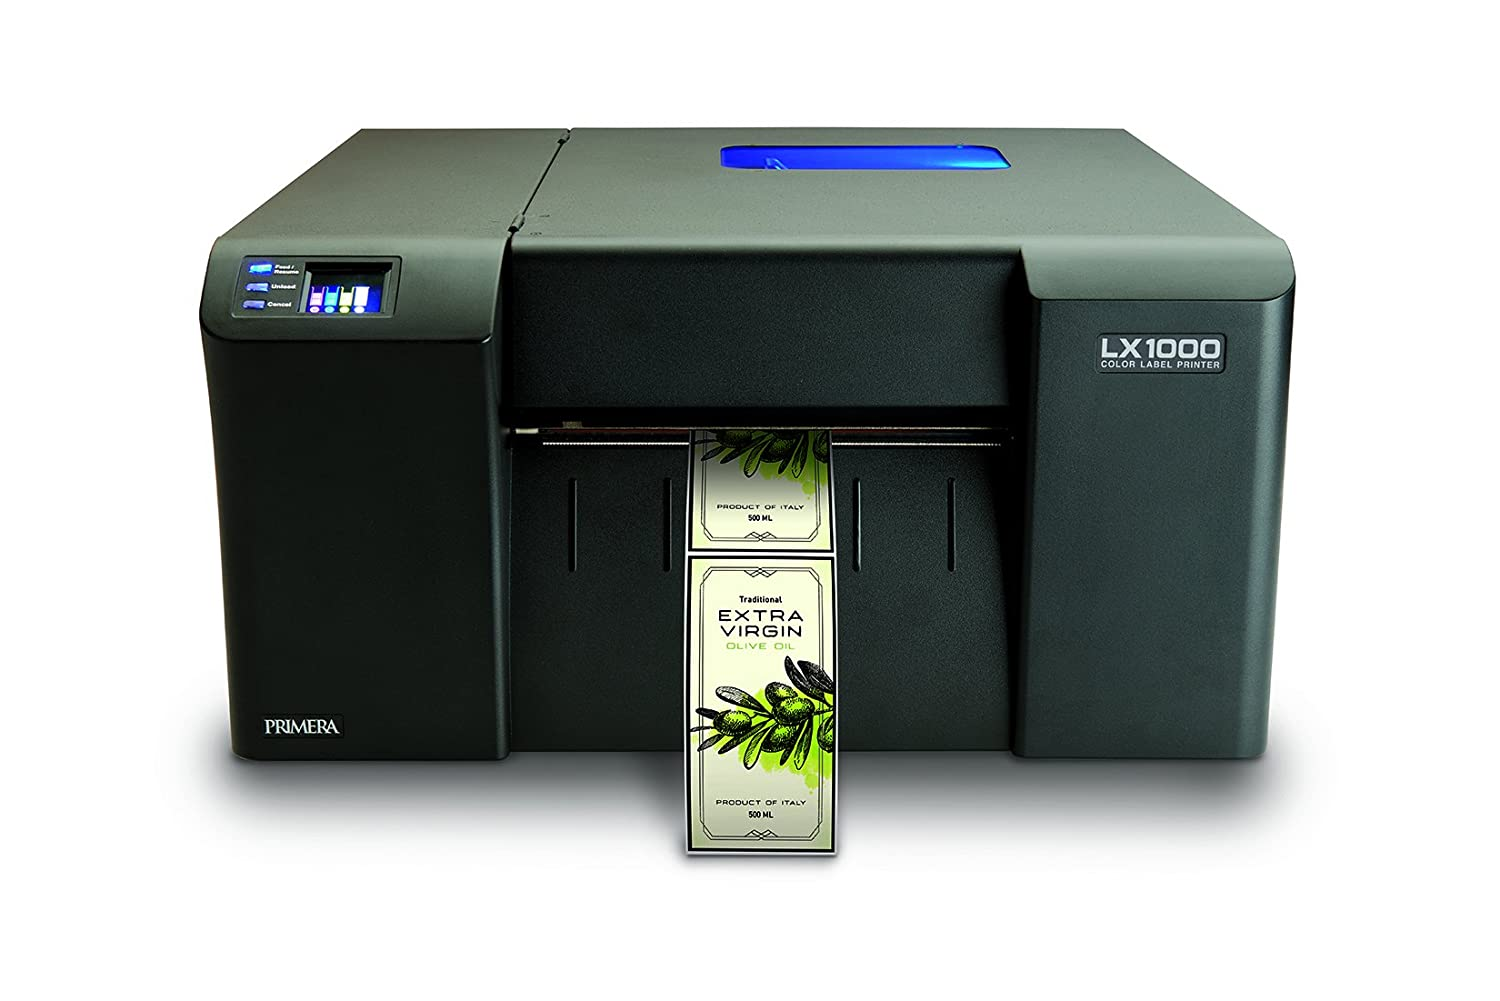 Amazon com: Primera LX1000 Color Label Printer – Print Your Own